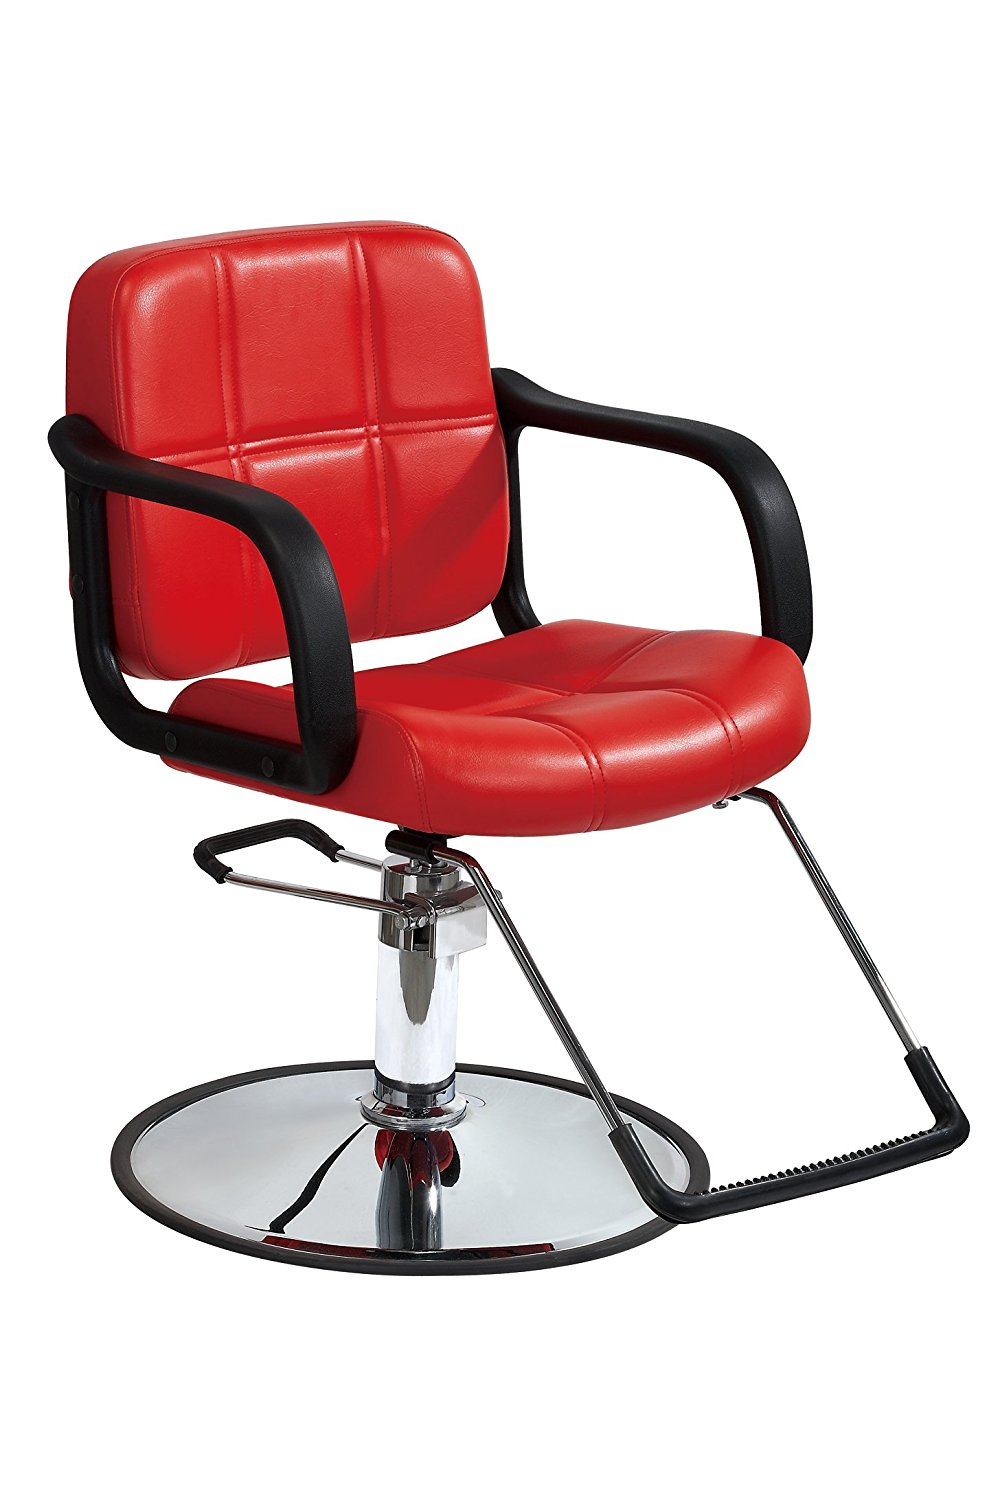 Red Hydraulic Barber Chair Styling Salon Beauty Equipment - Walmart.com